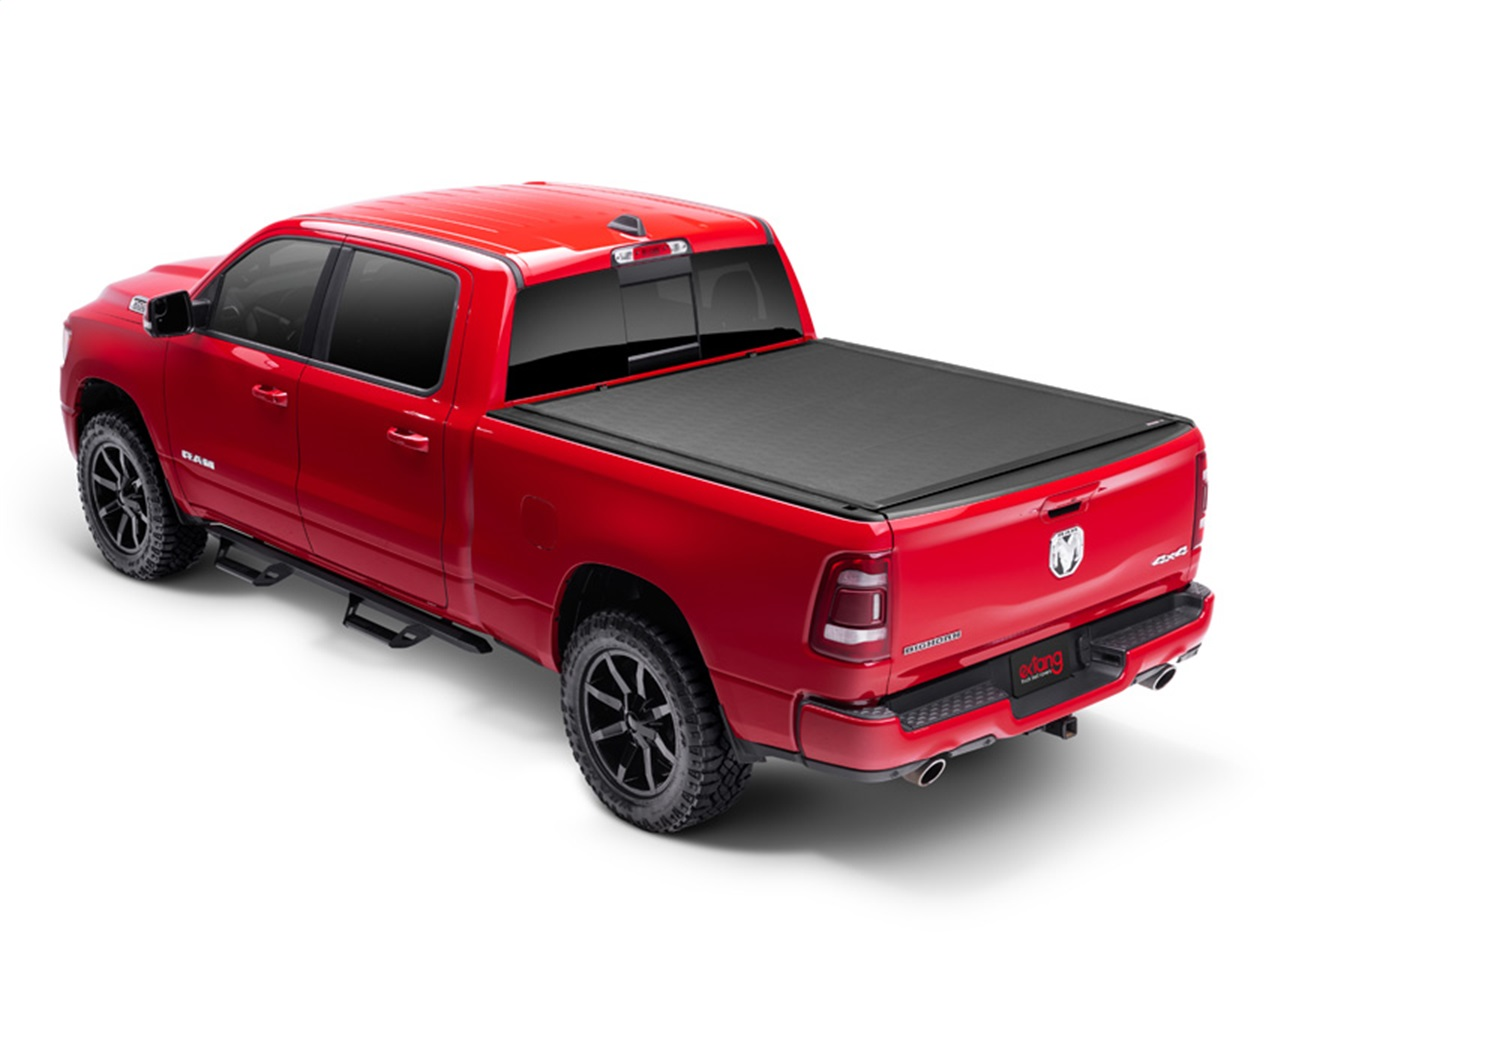 Extang 85465 Xceed Tonneau Cover Fits 14-20 Tundra